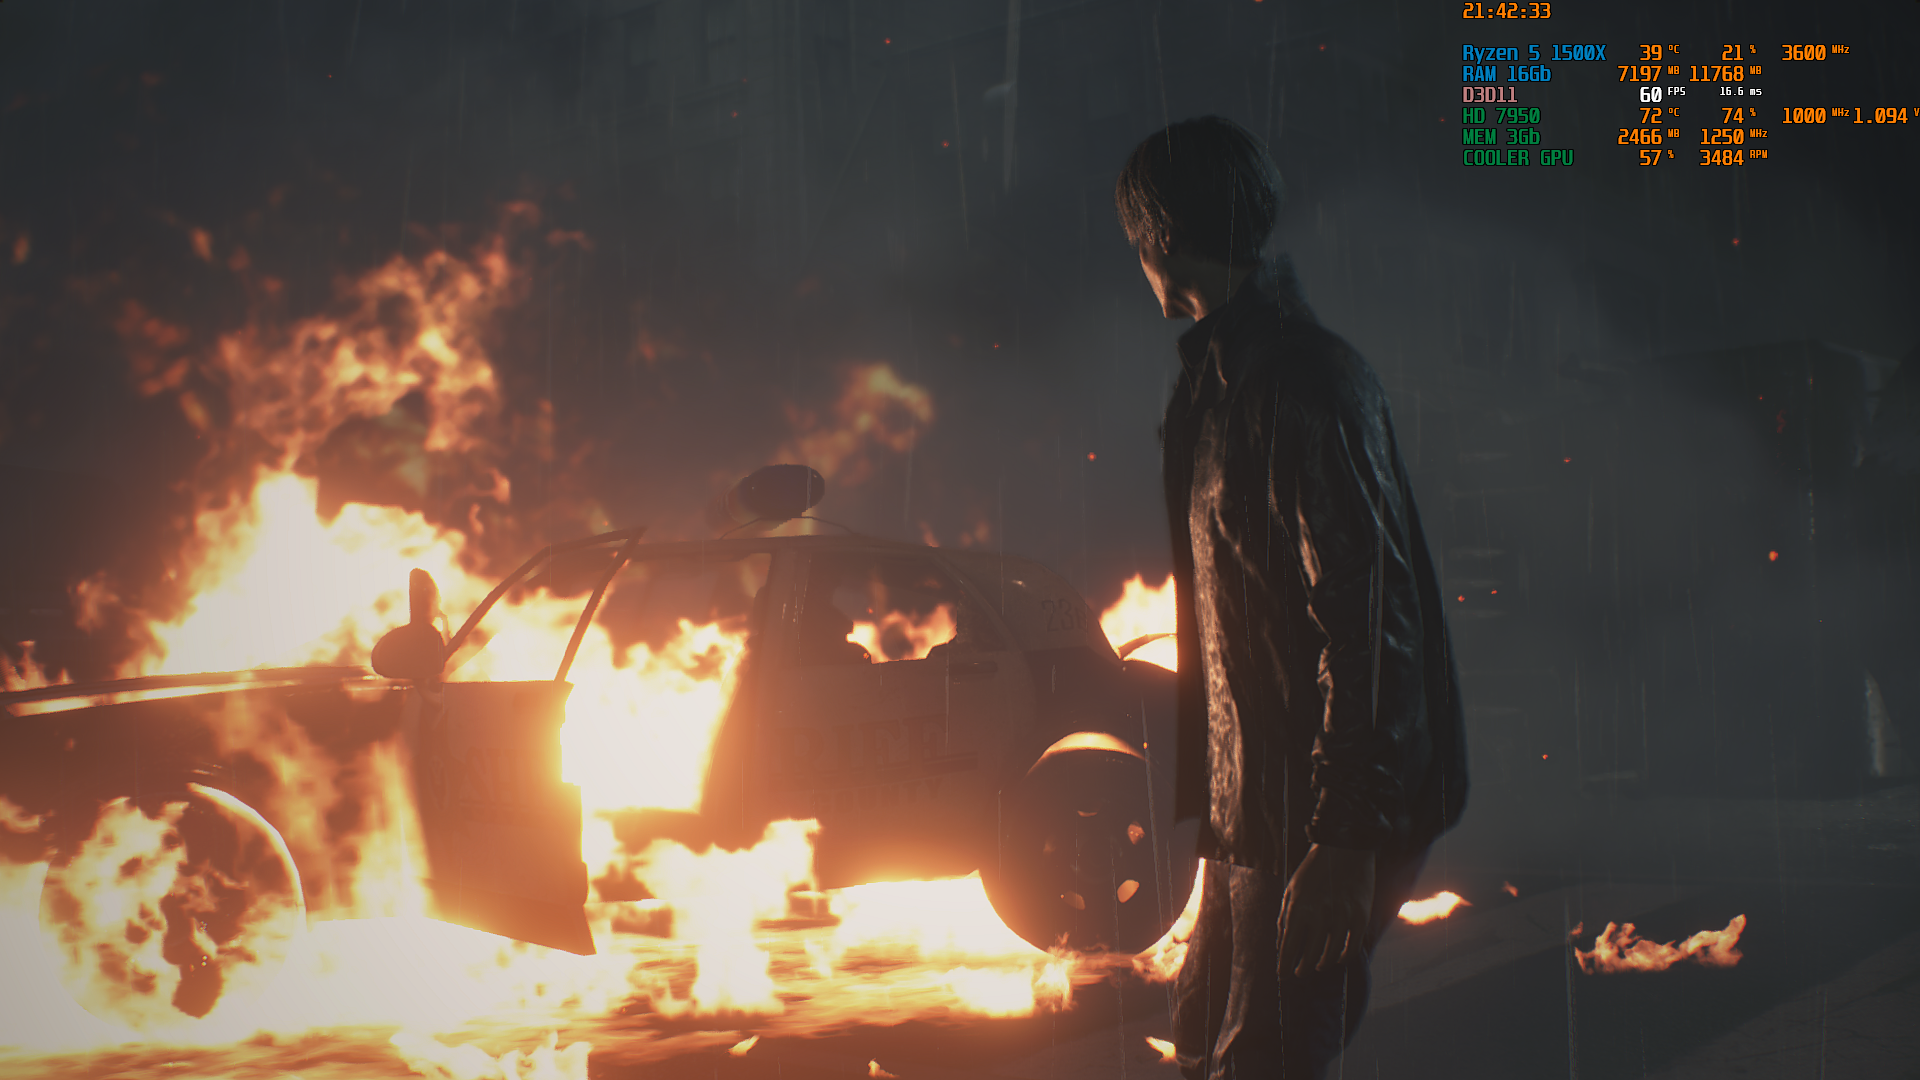 re2_2019_02_14_21_42_34_280.png - Resident Evil 2